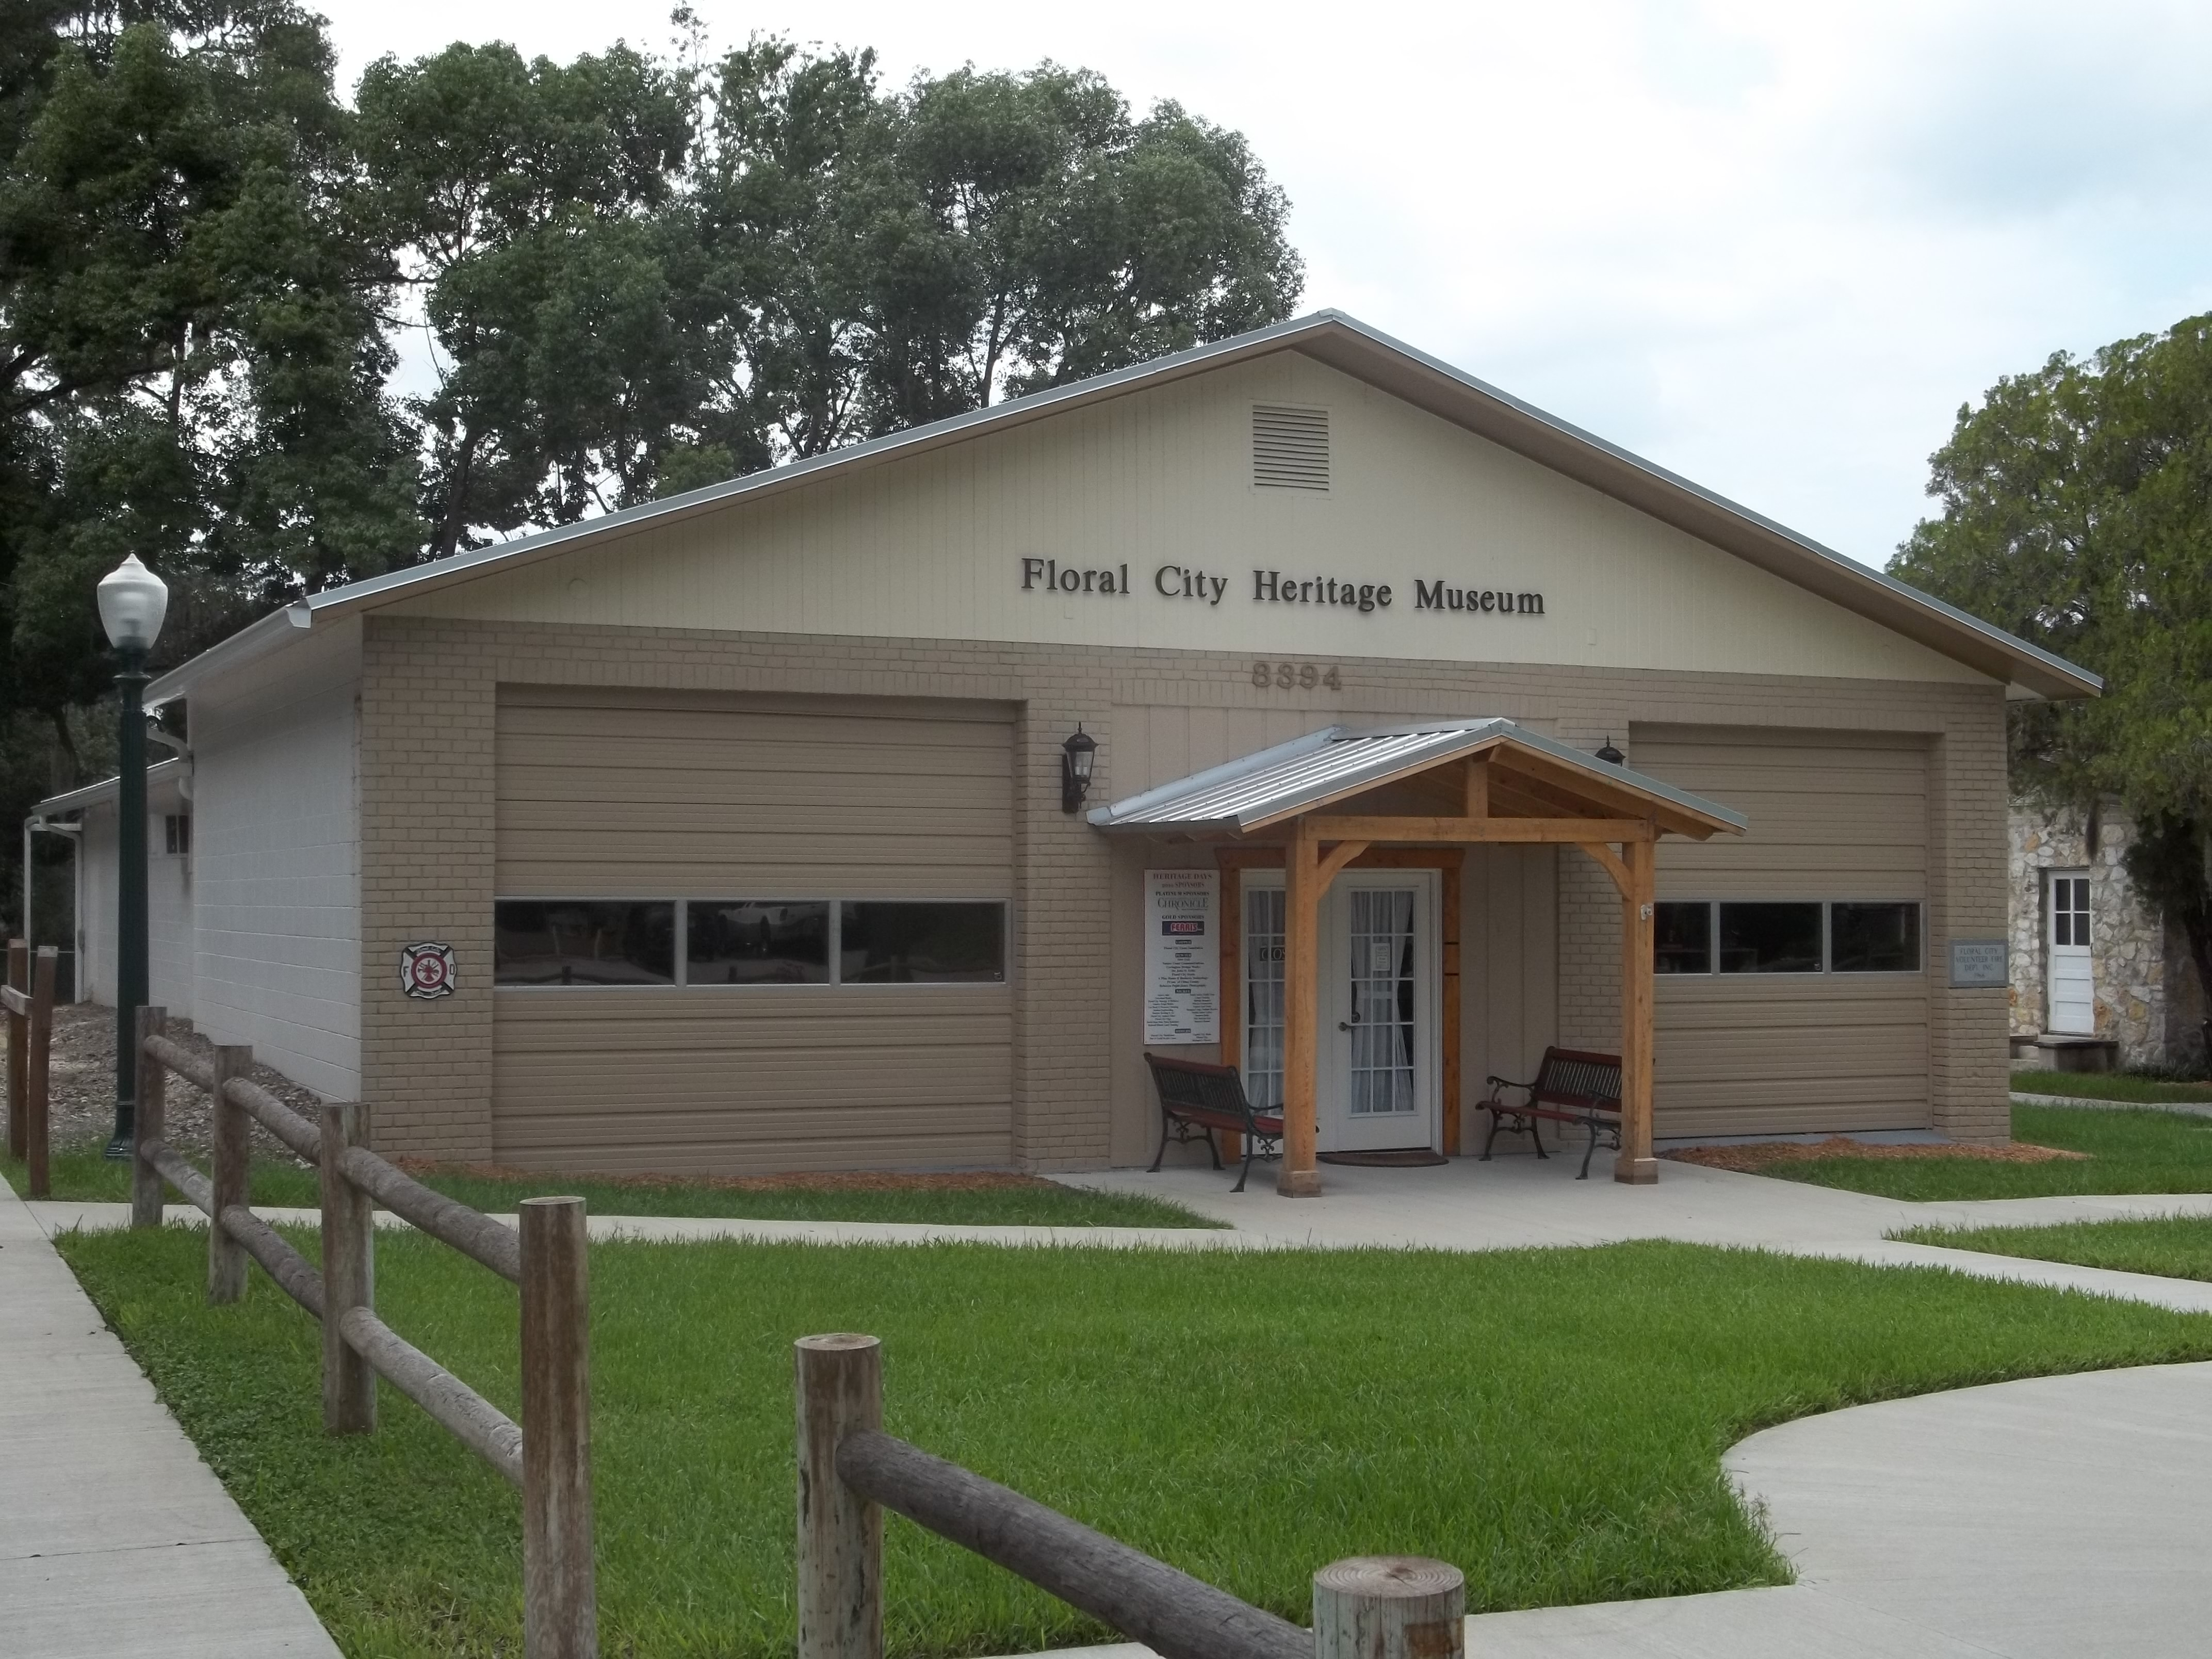 The Floral City Heritage Hall Museum